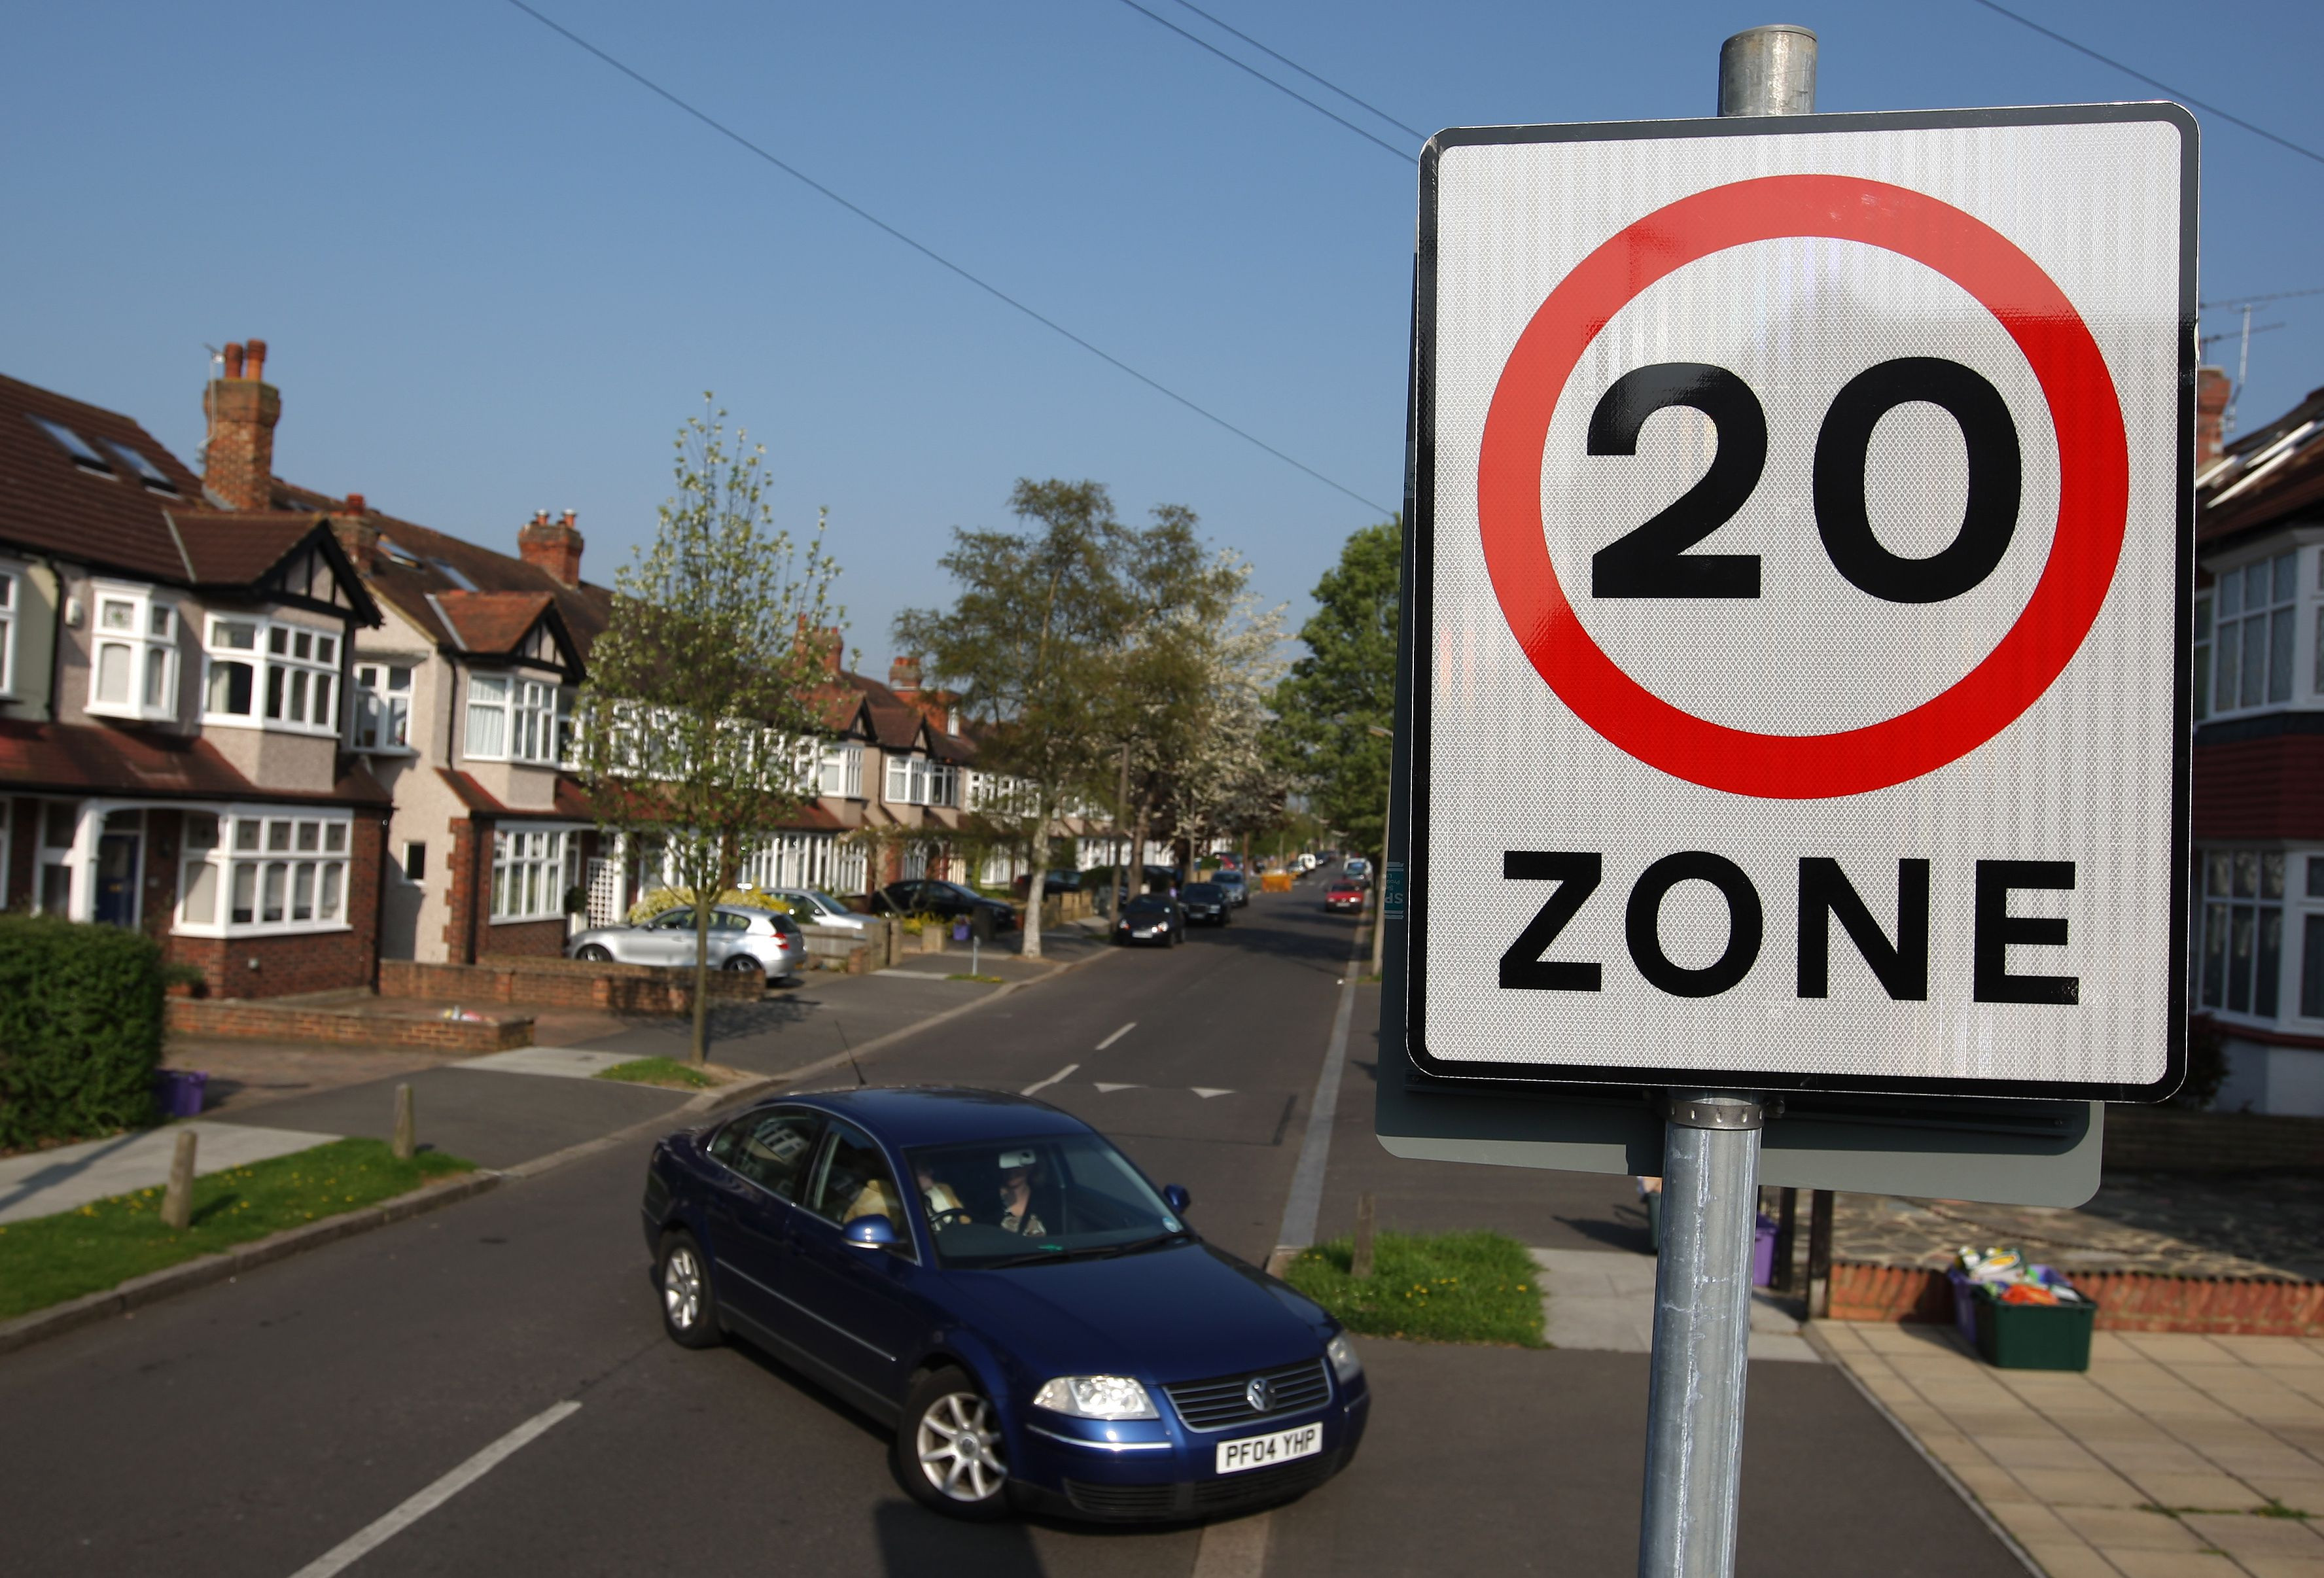 """0 mph zone sign in a suburban street"